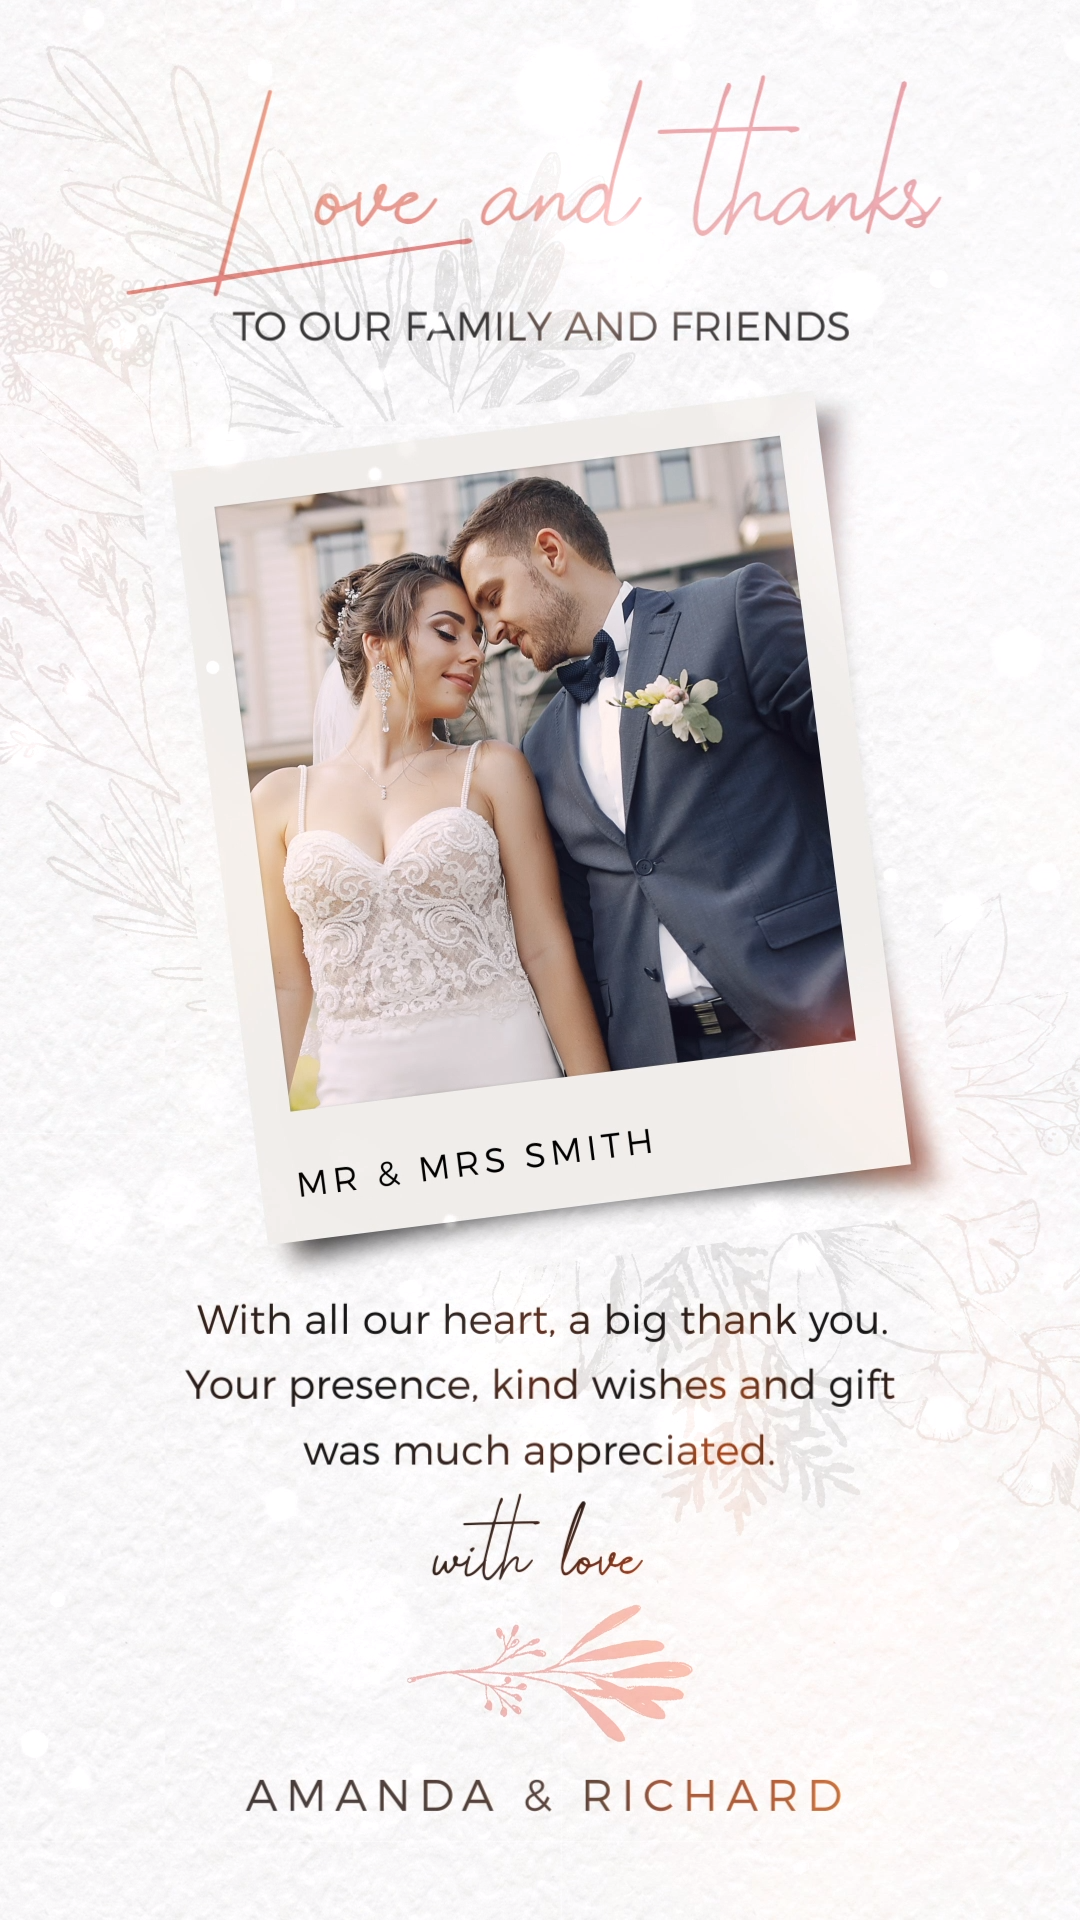 Looking for a unique wedding thank you card ideas? This elegant wedding thank you card with photo is the perfect choice to say thank you to your wedding guests for sharing your special day. Share your electronic invitation via phone message, WhatsApp, email or social media. Pin This + Click Through to see more images and digital invitations! #weddingthankyou #weddingideas #elegantweddinginvites #weddingthankyougifts #weddinginspiration #weddingphotos